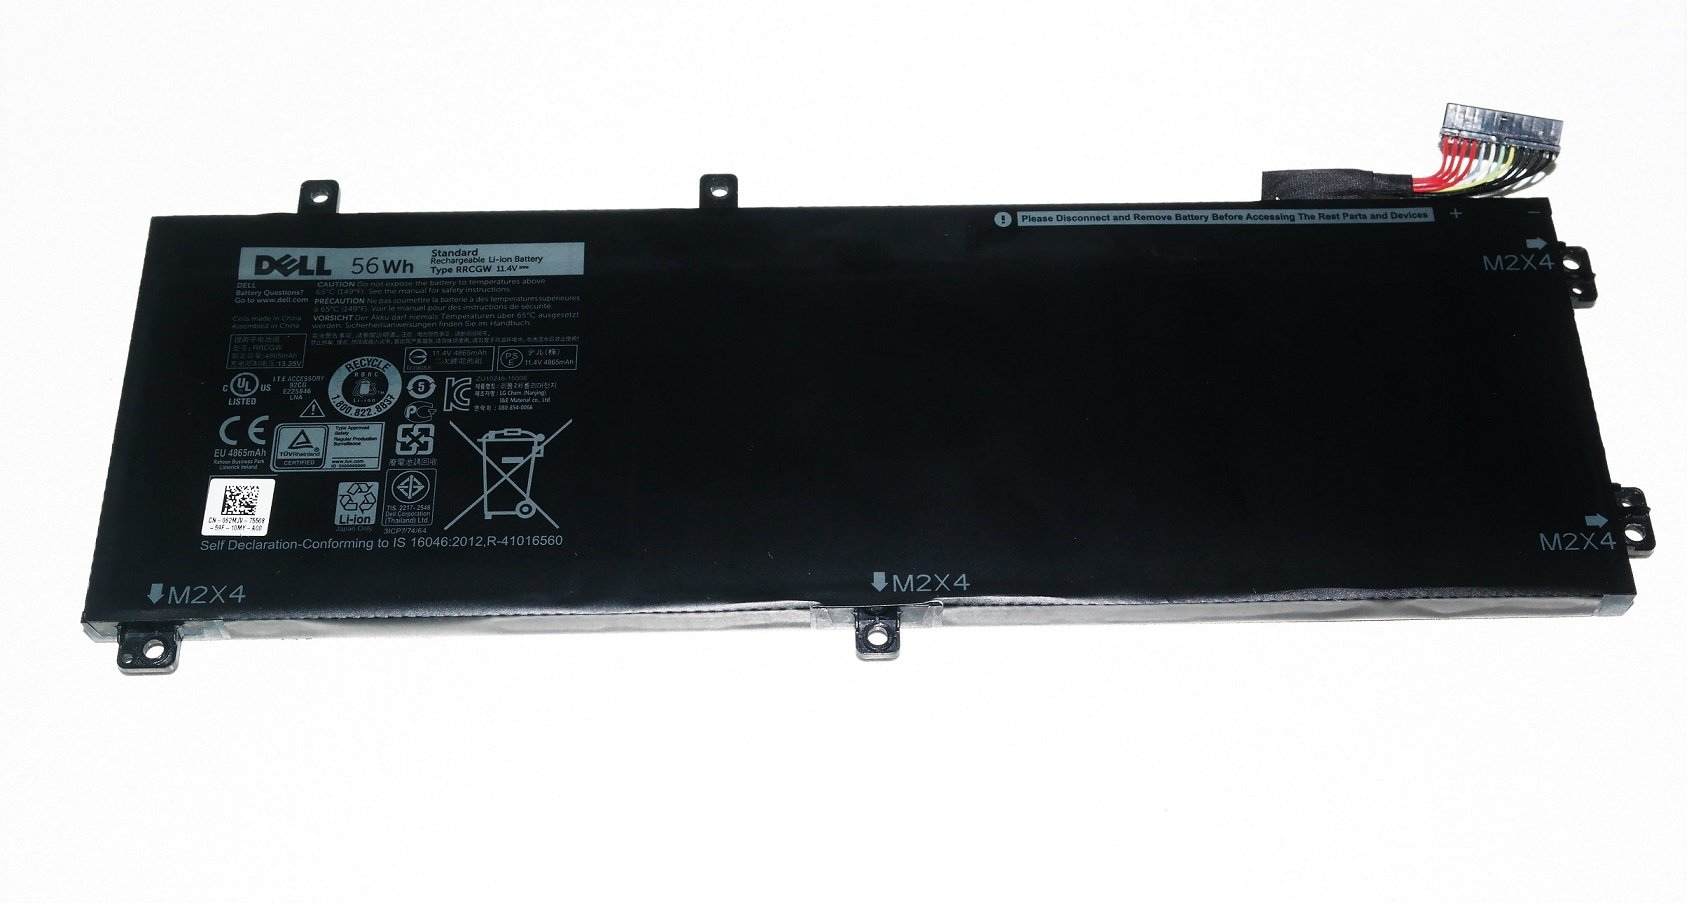 New Genuine Dell XPS 15 9550 and Dell Precision 5510 56WHR 3 Cell Li-ion Battery RRCGW